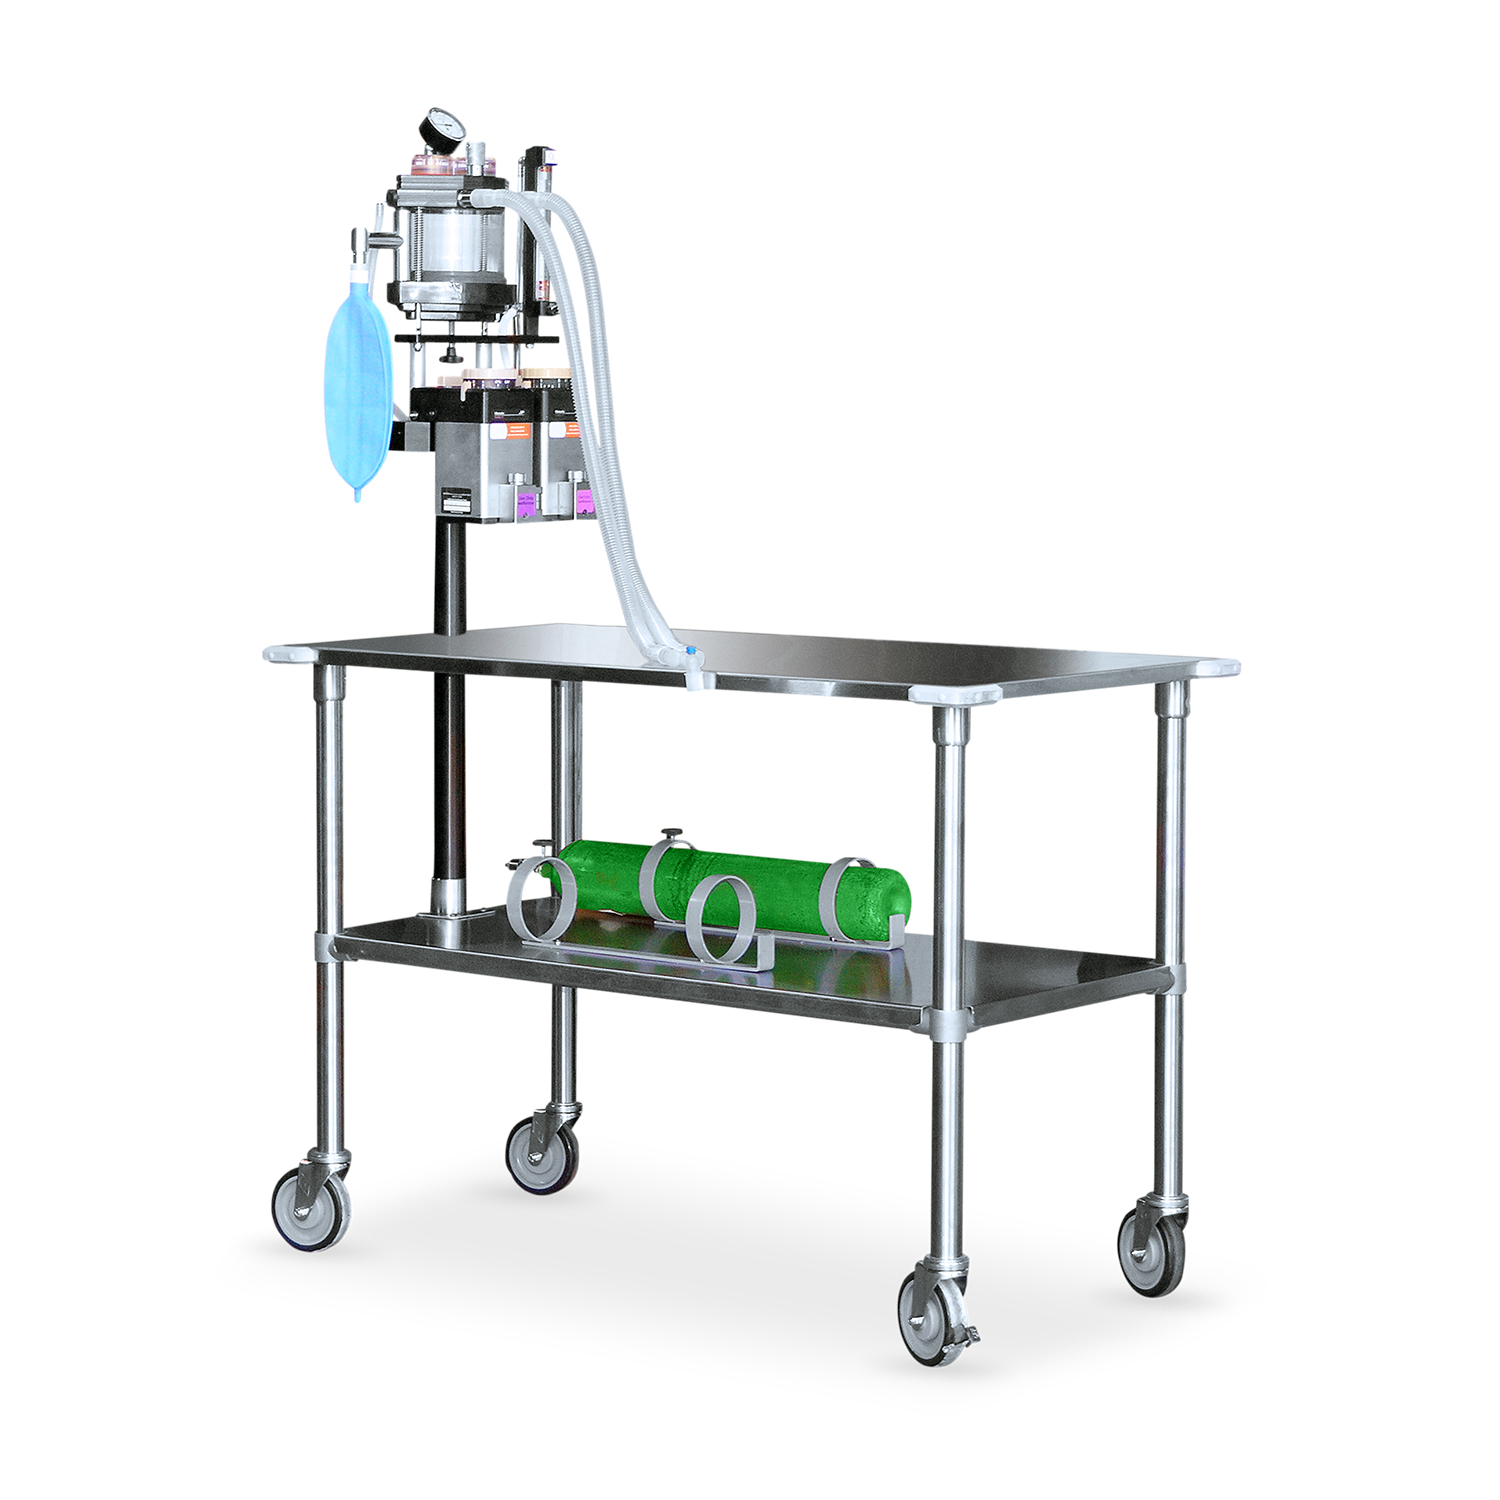 Avante Stainless Steel Gurney with Anesthesia Machine